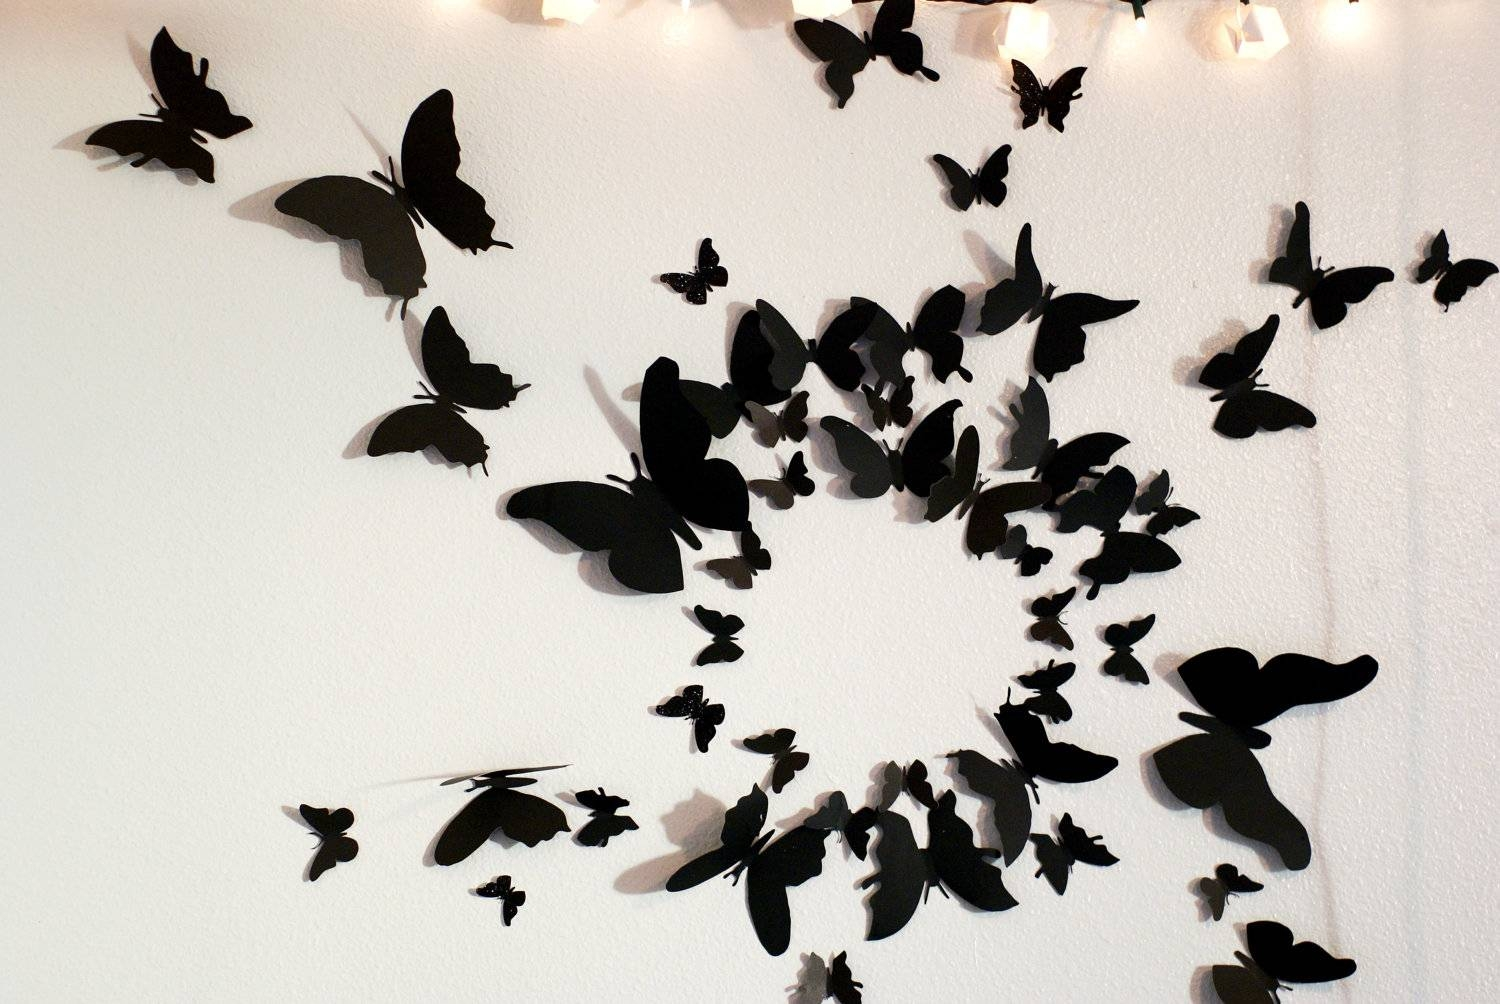 3D Butterfly Wall Art South Africa | Wallartideas Within Latest South Africa Wall Art 3D (View 5 of 20)